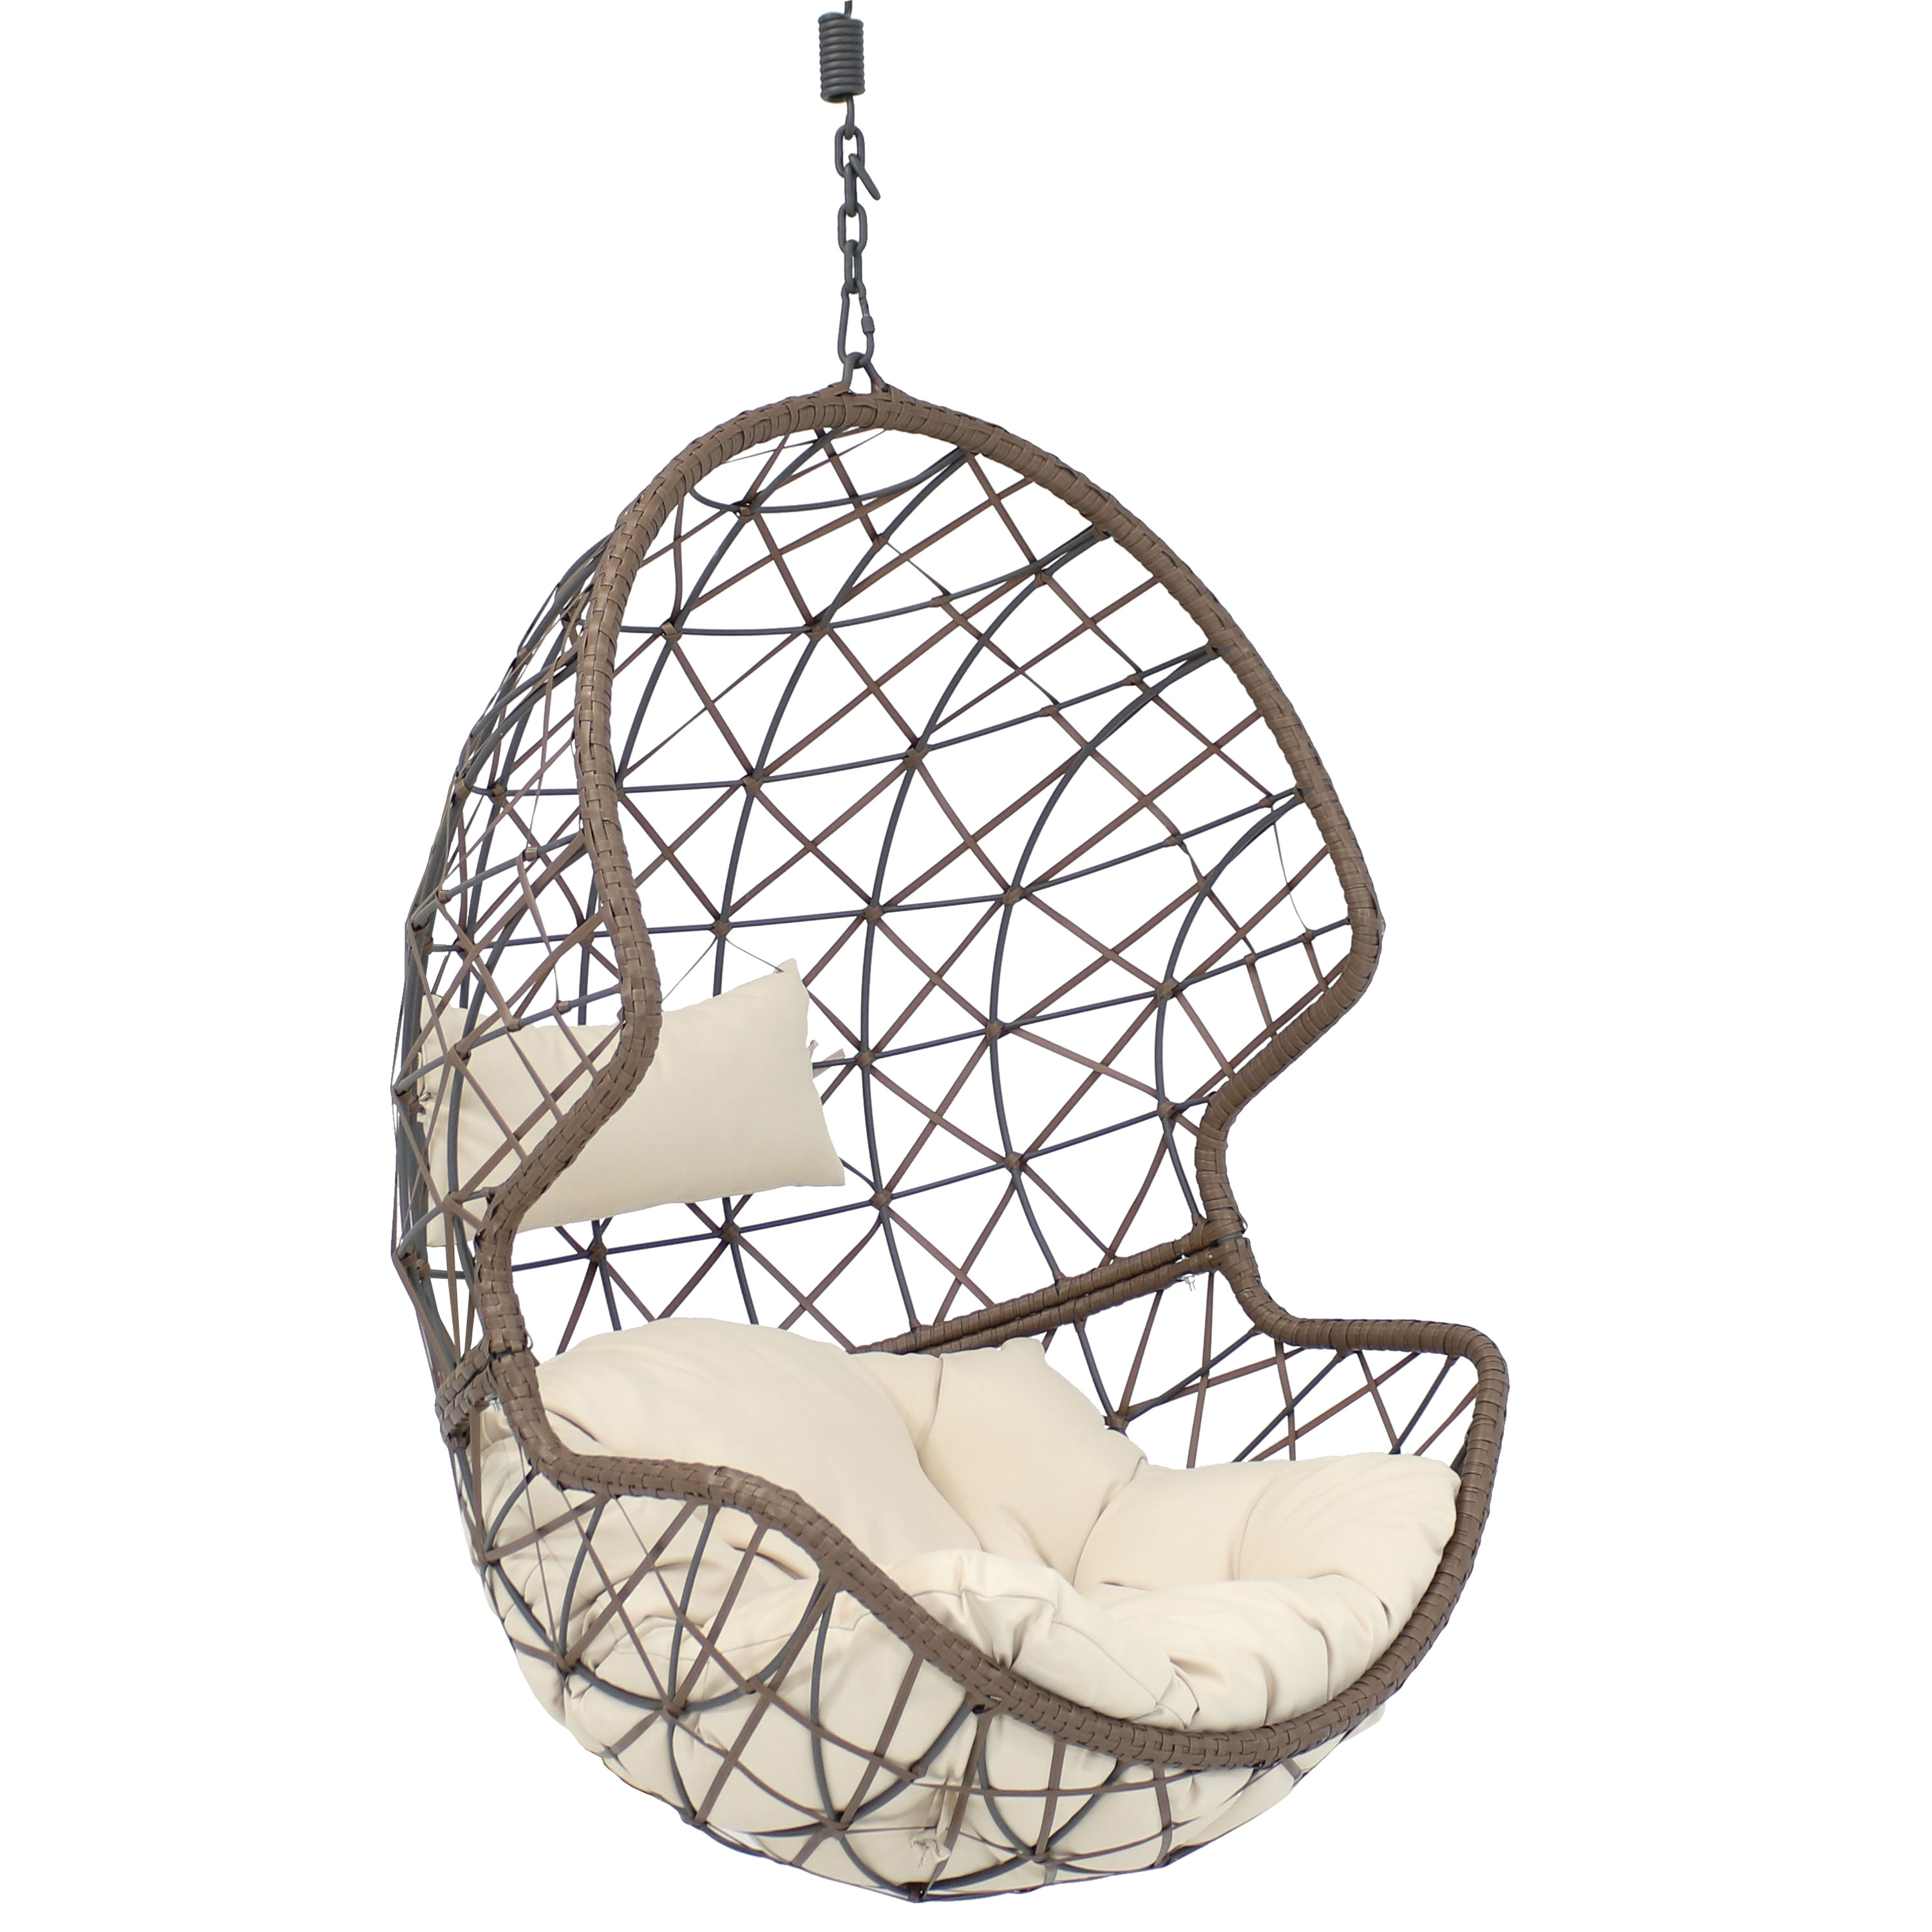 Hanging Egg Chair Swing Wicker Basket Use Beige Cushion Photo